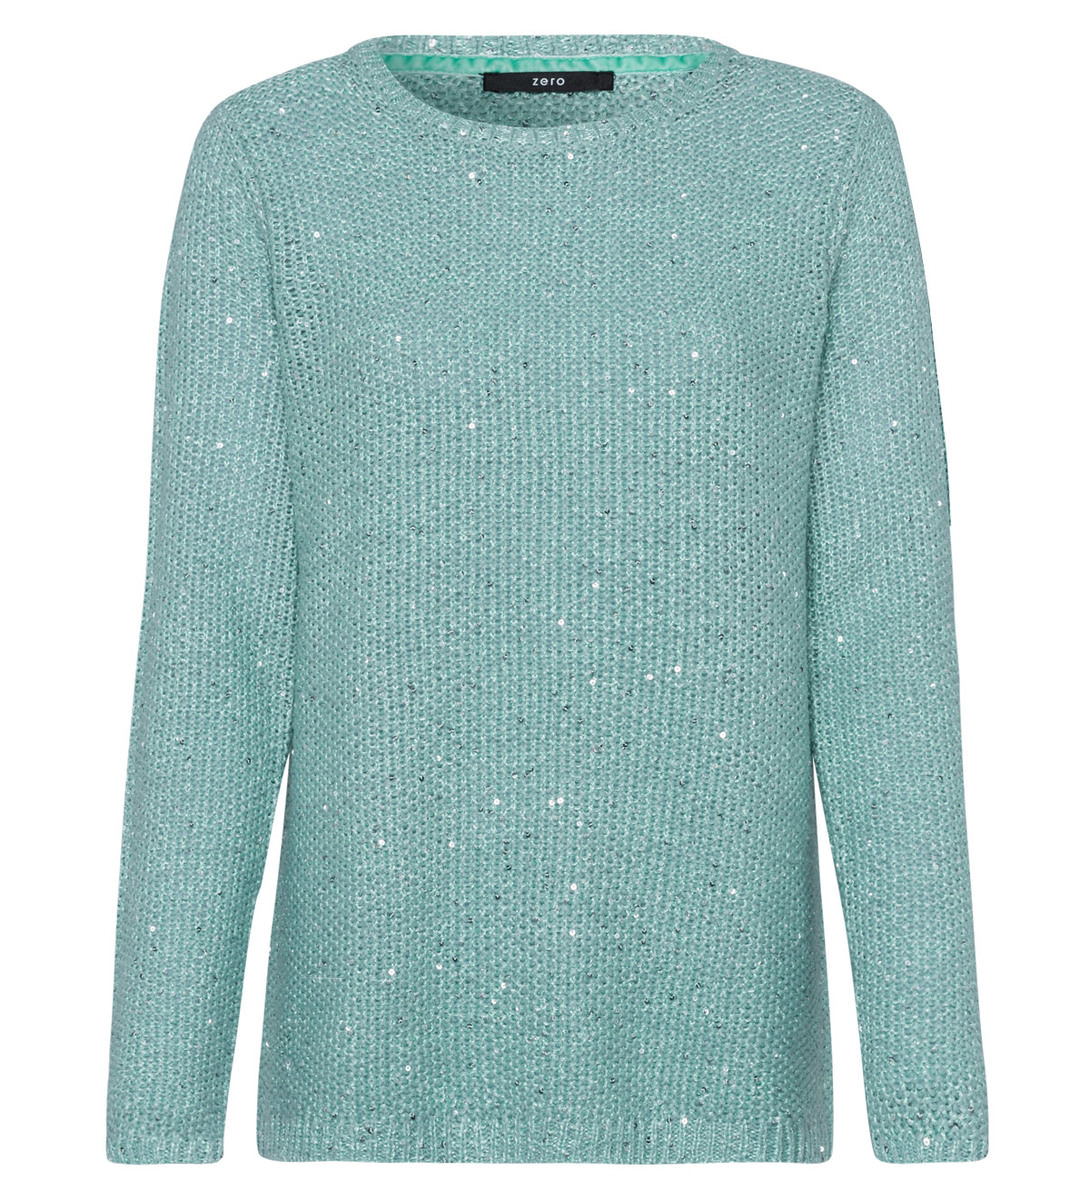 Pullover mit Pailletten in light jade